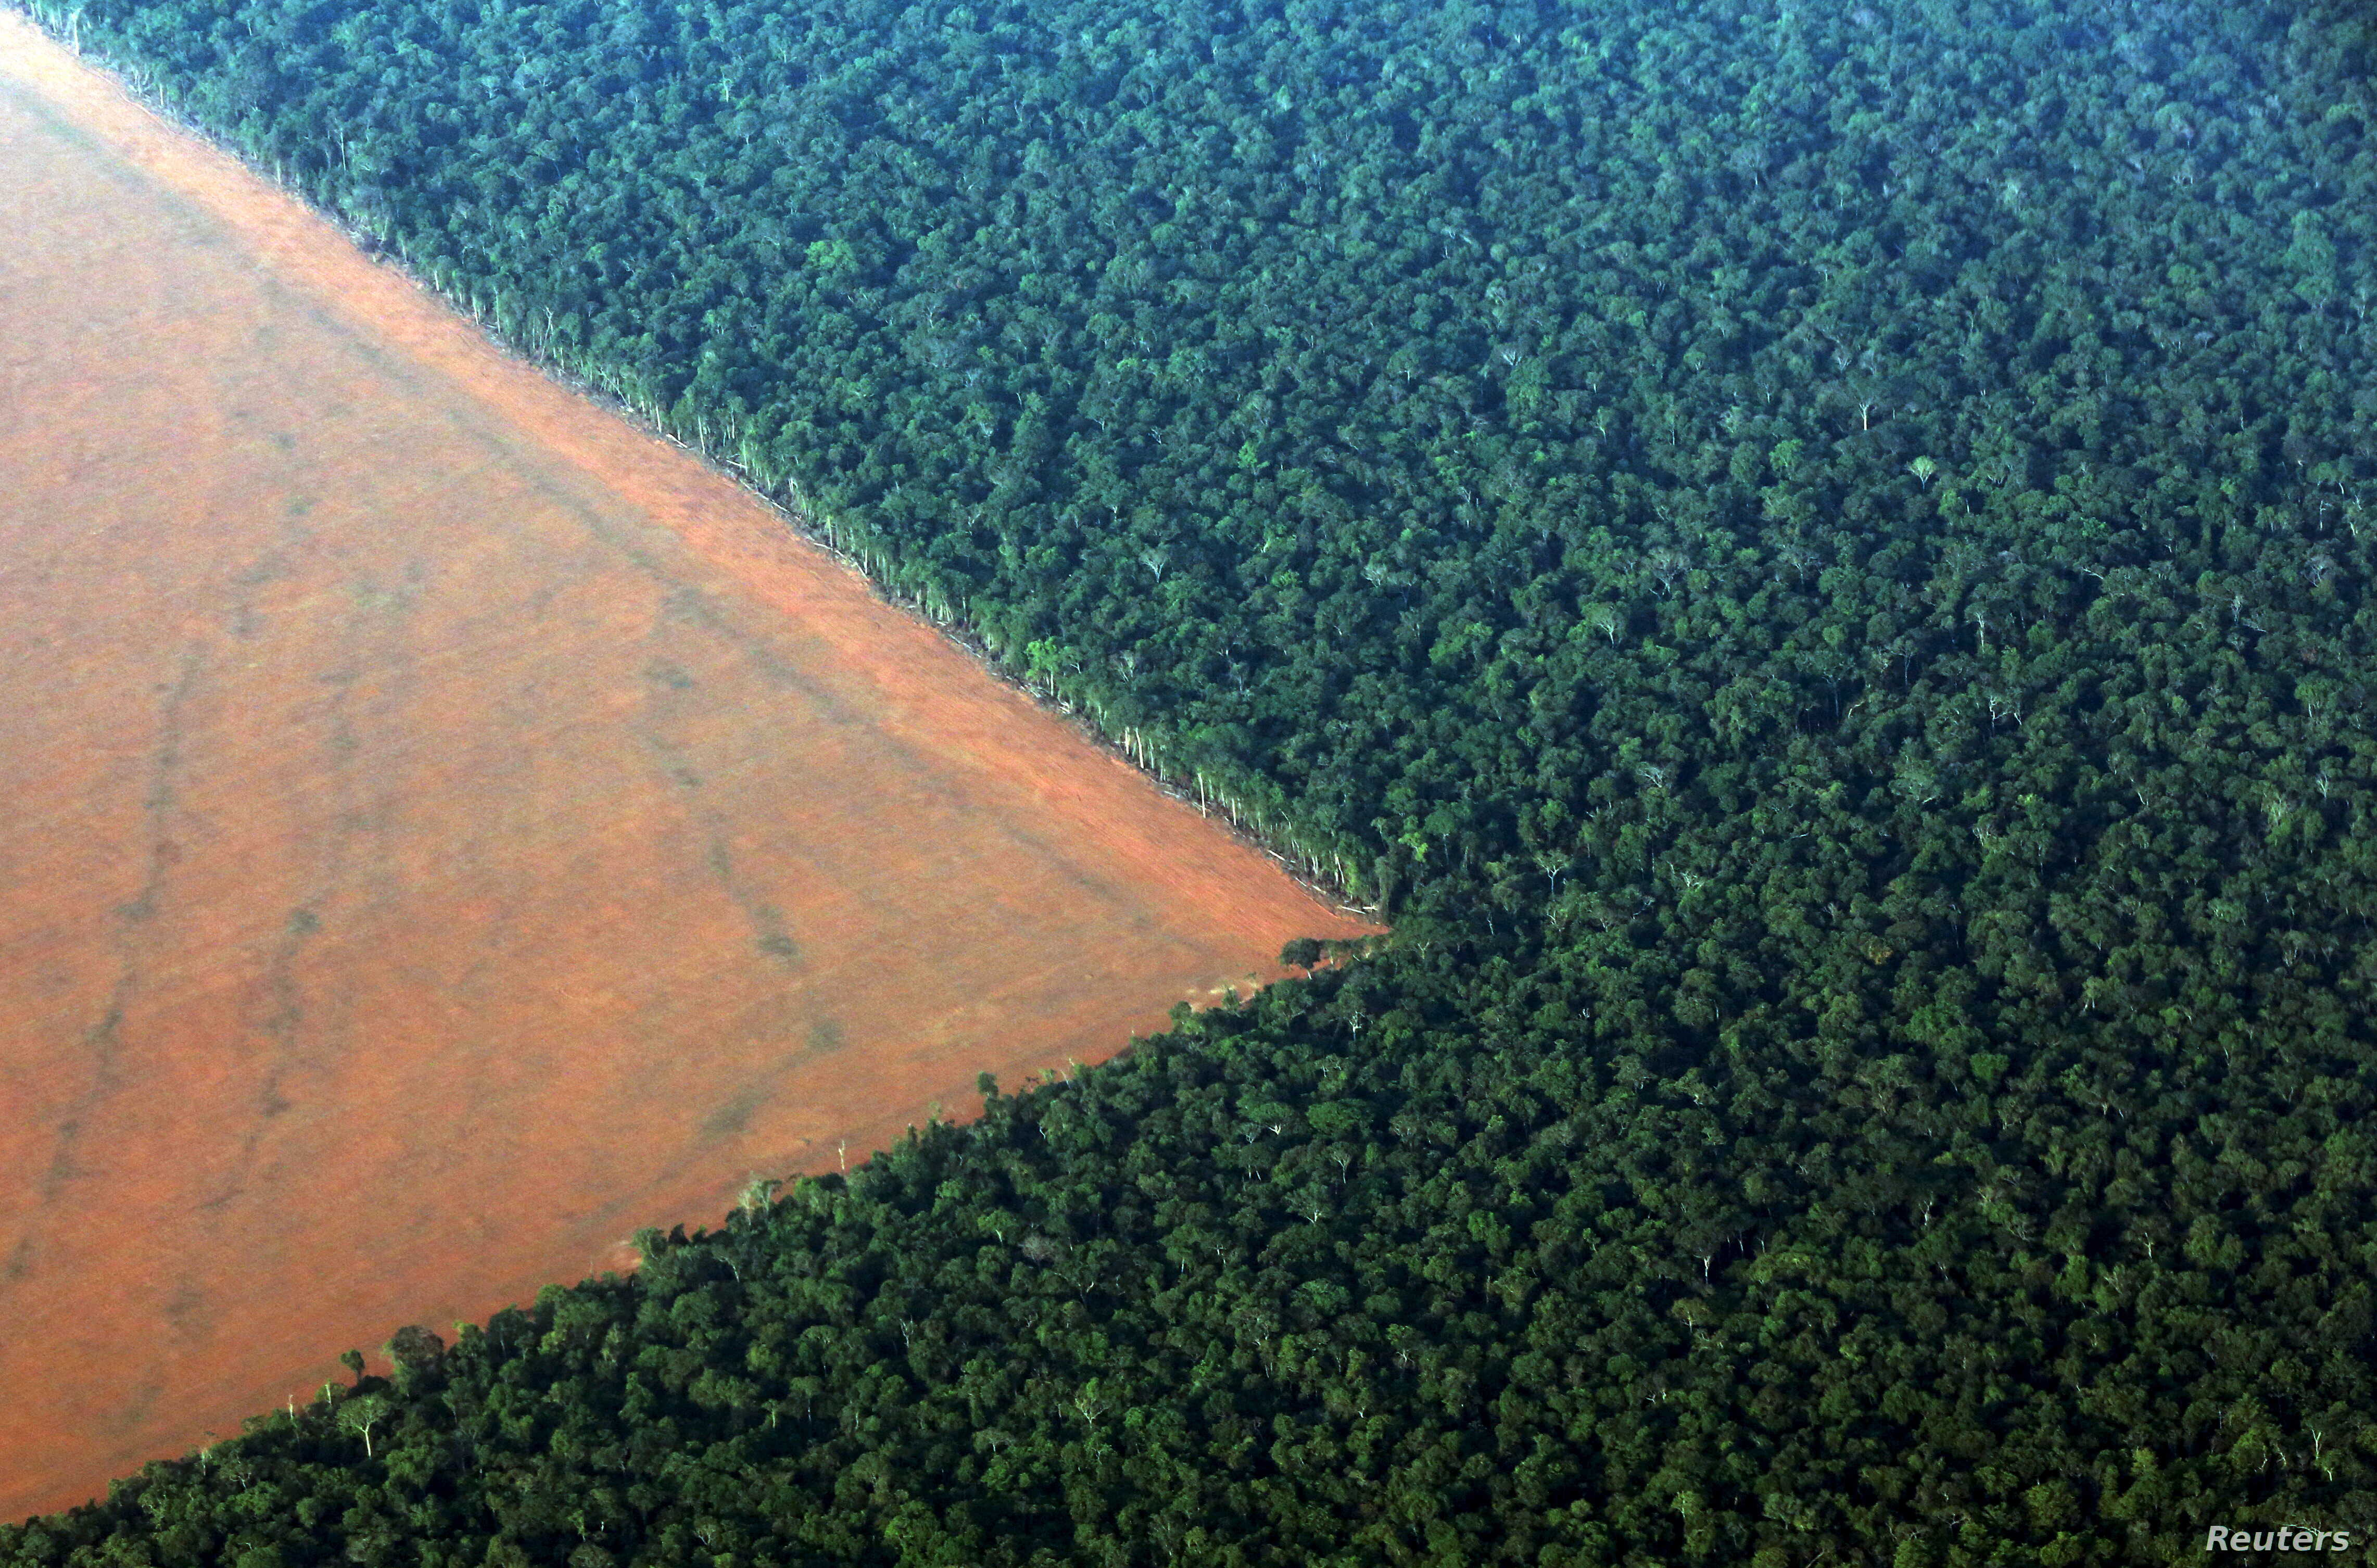 Destruction Of Brazil S Amazon Forest Jumps 16 Percent In 2015